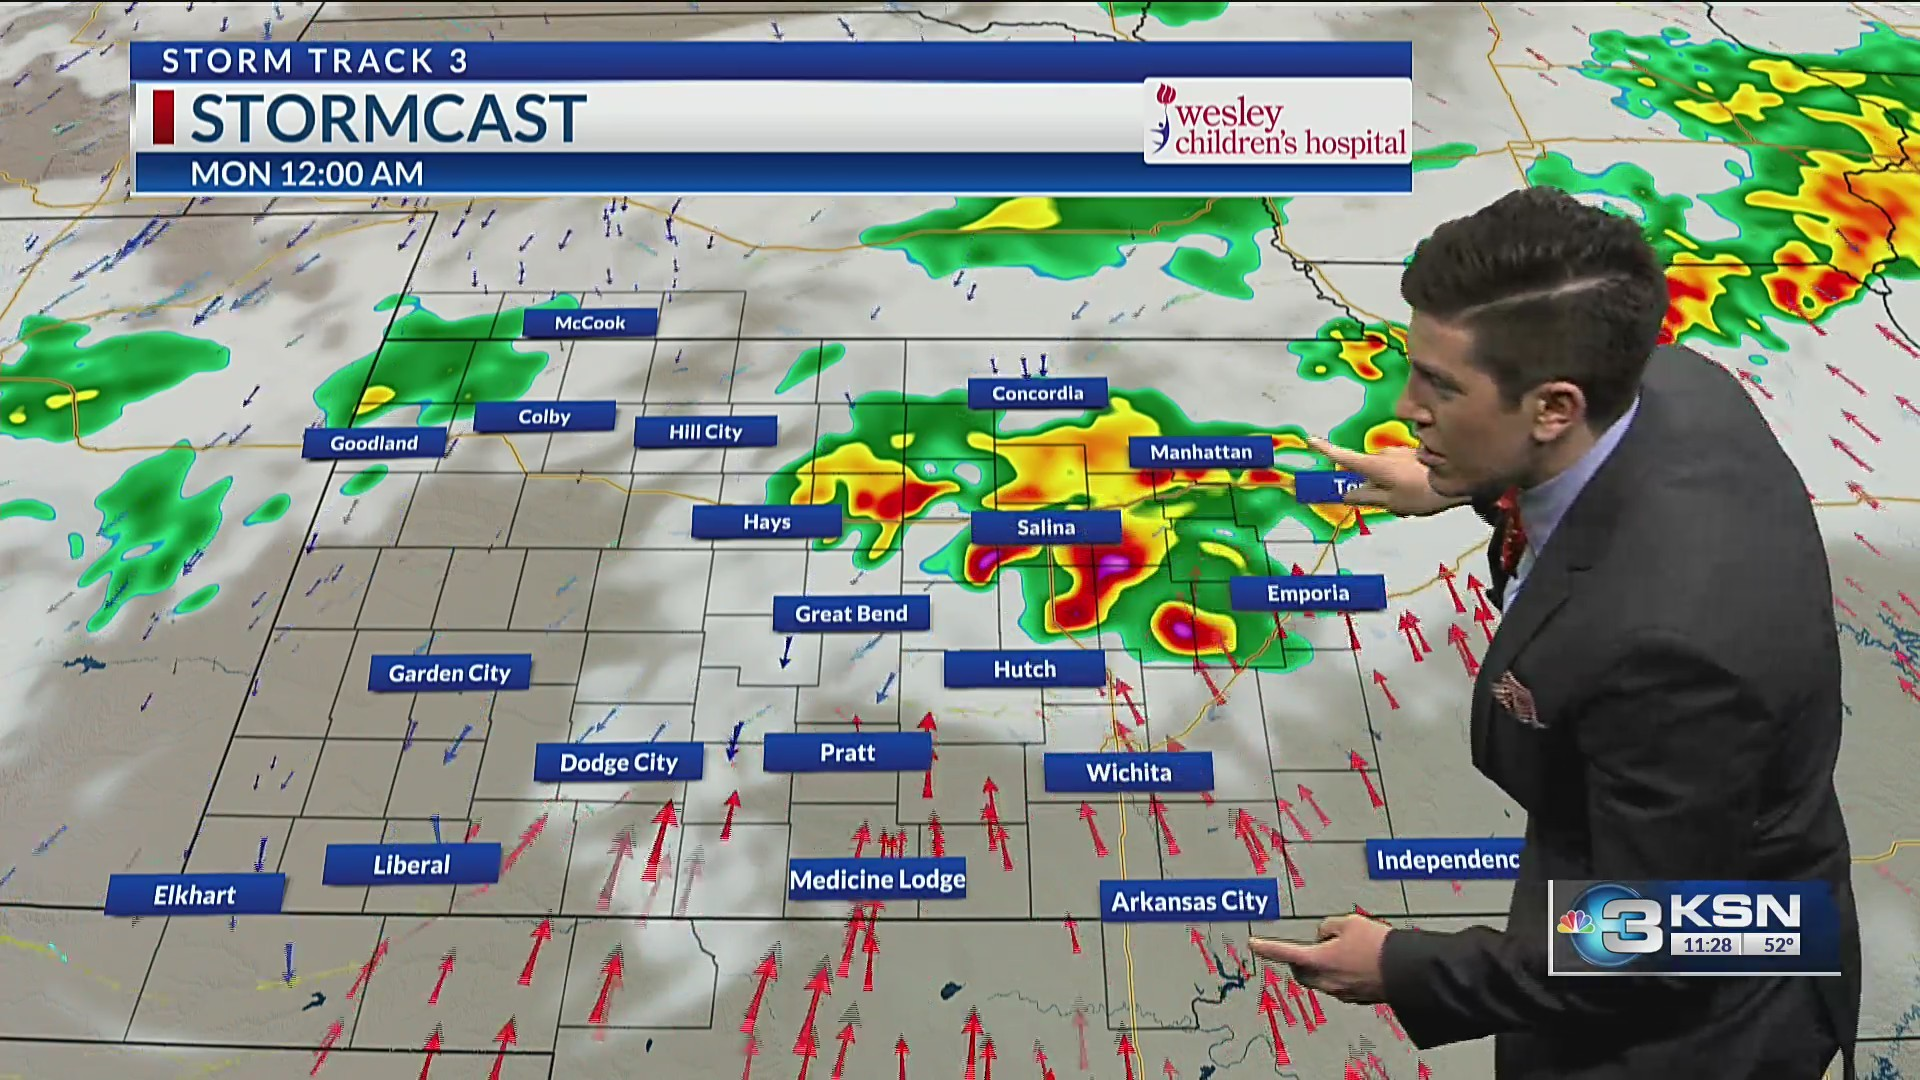 Storm Track 3 Update: Scattered thunderstorms by the latter half of our Sunday